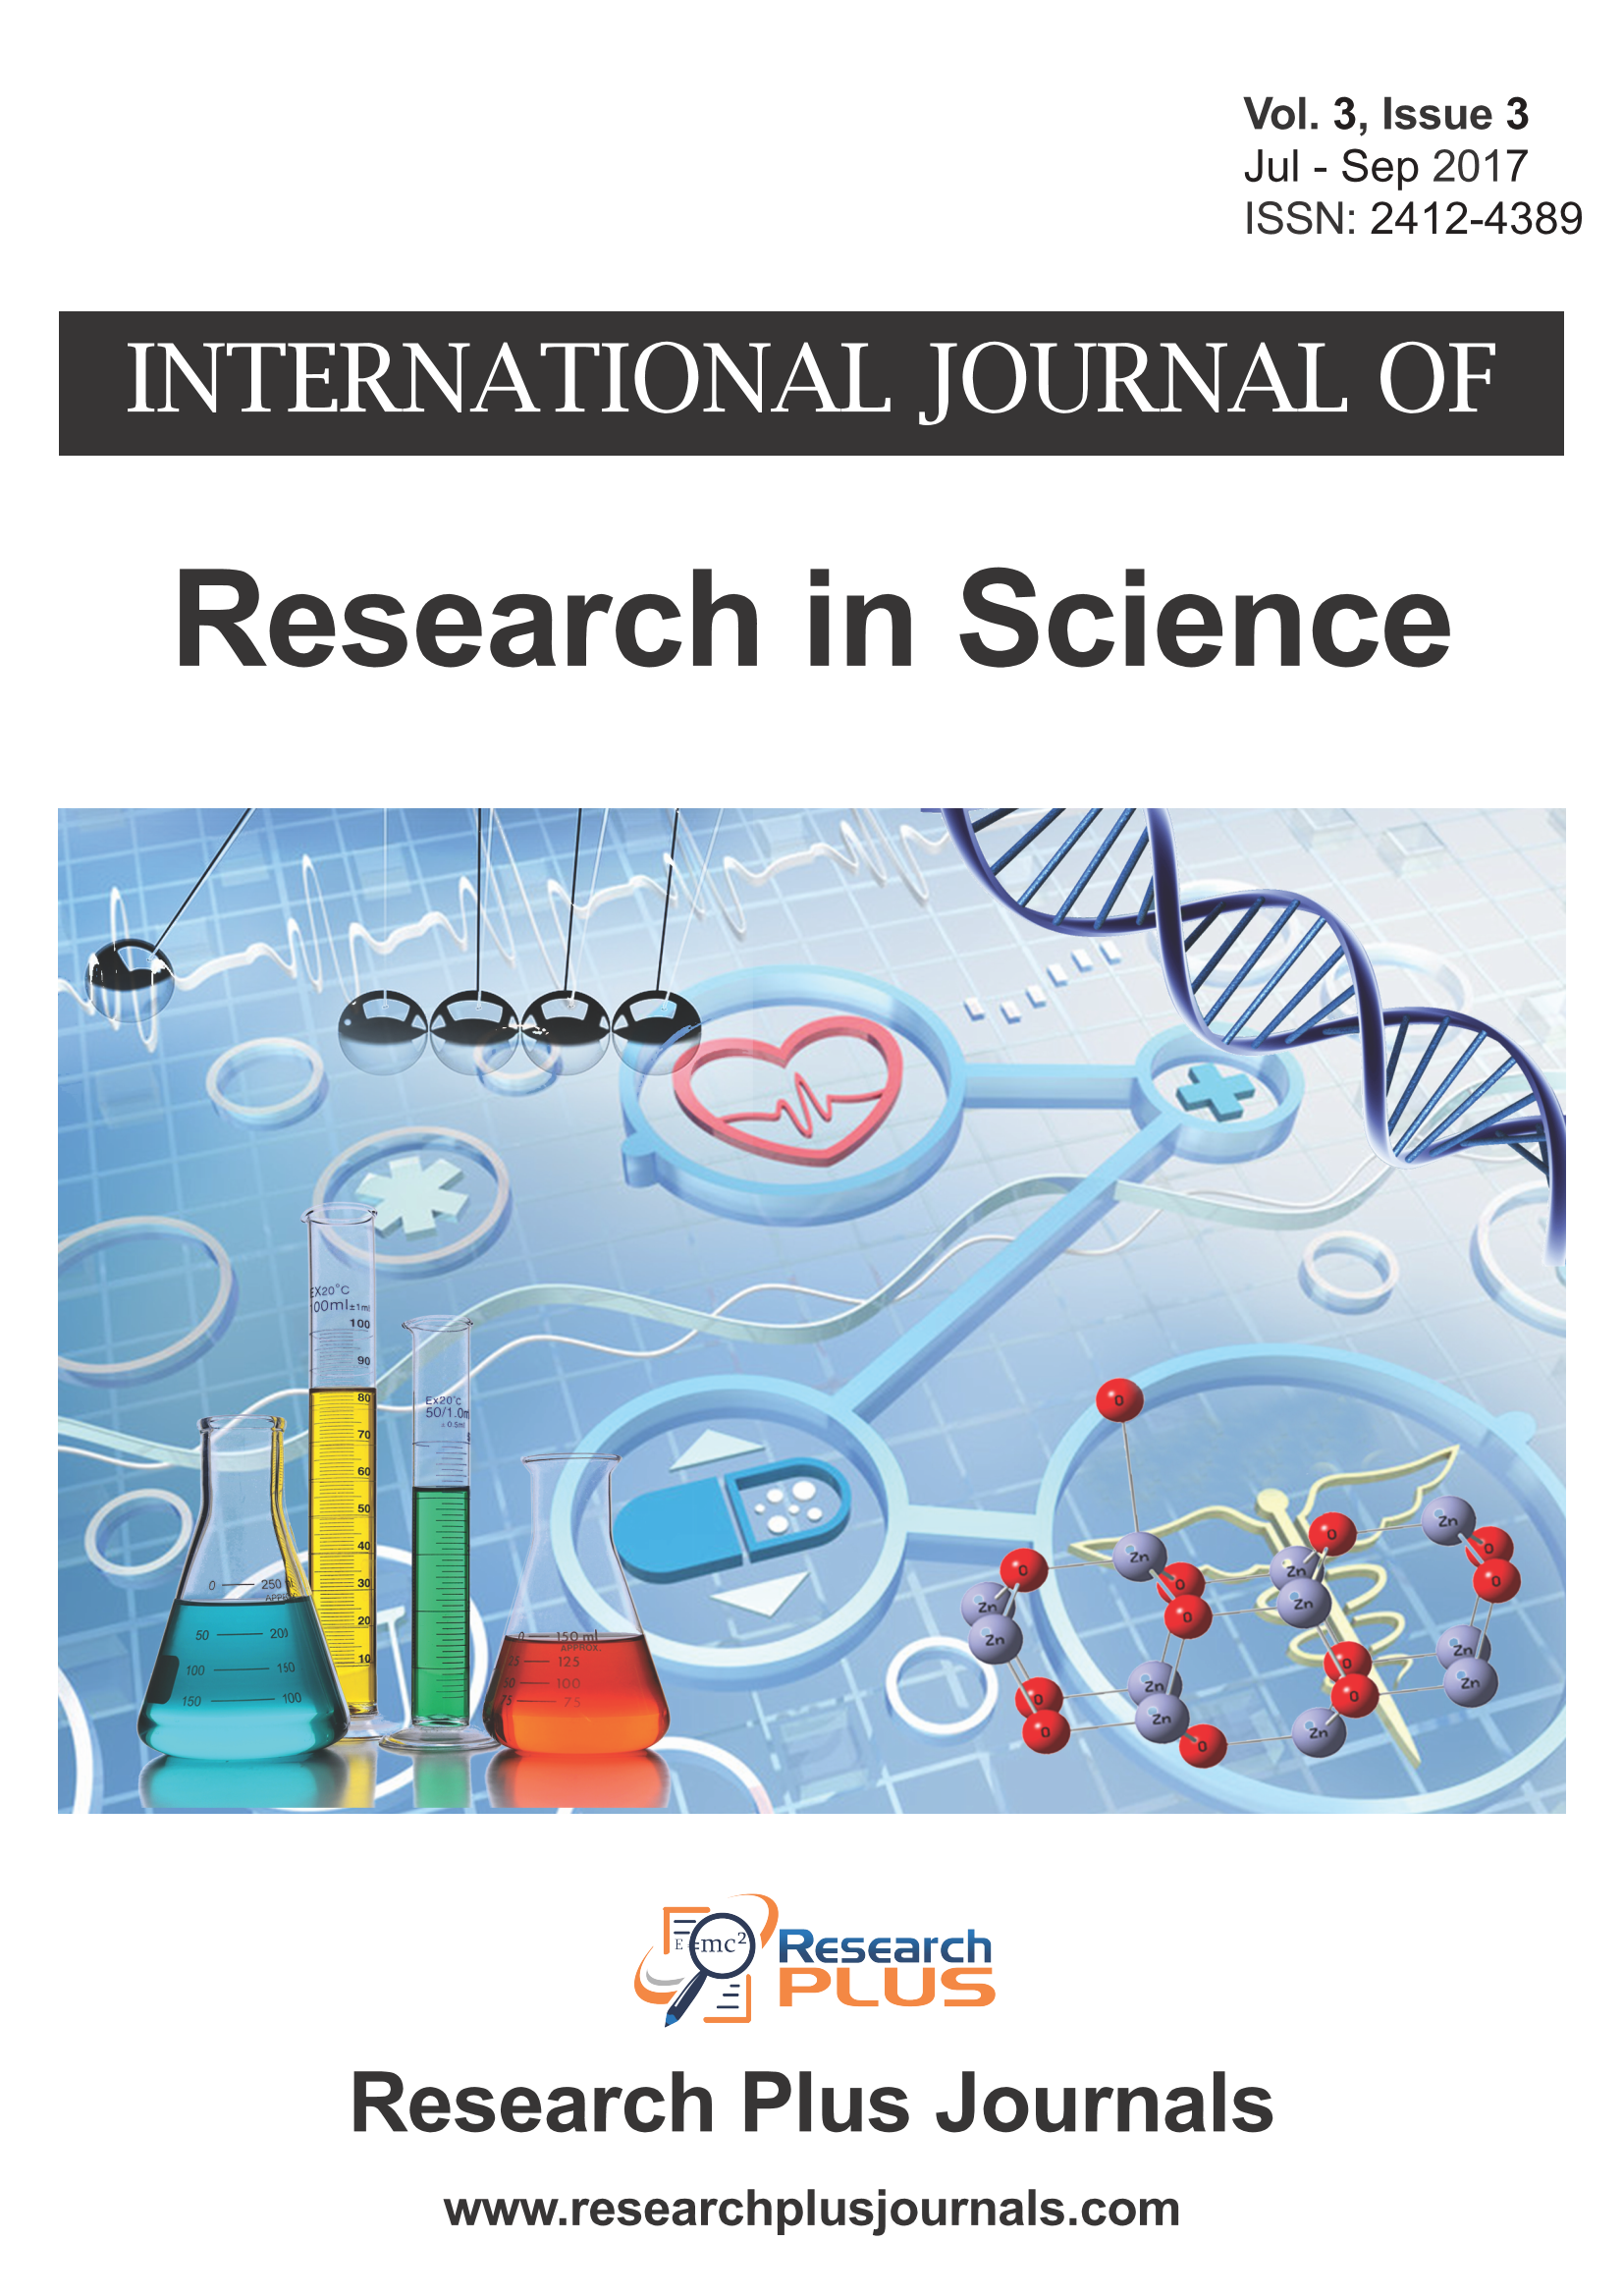 Volume 3, Issue 3, International Journal of Research in Science (IJRS) (Online ISSN 2412-4389)